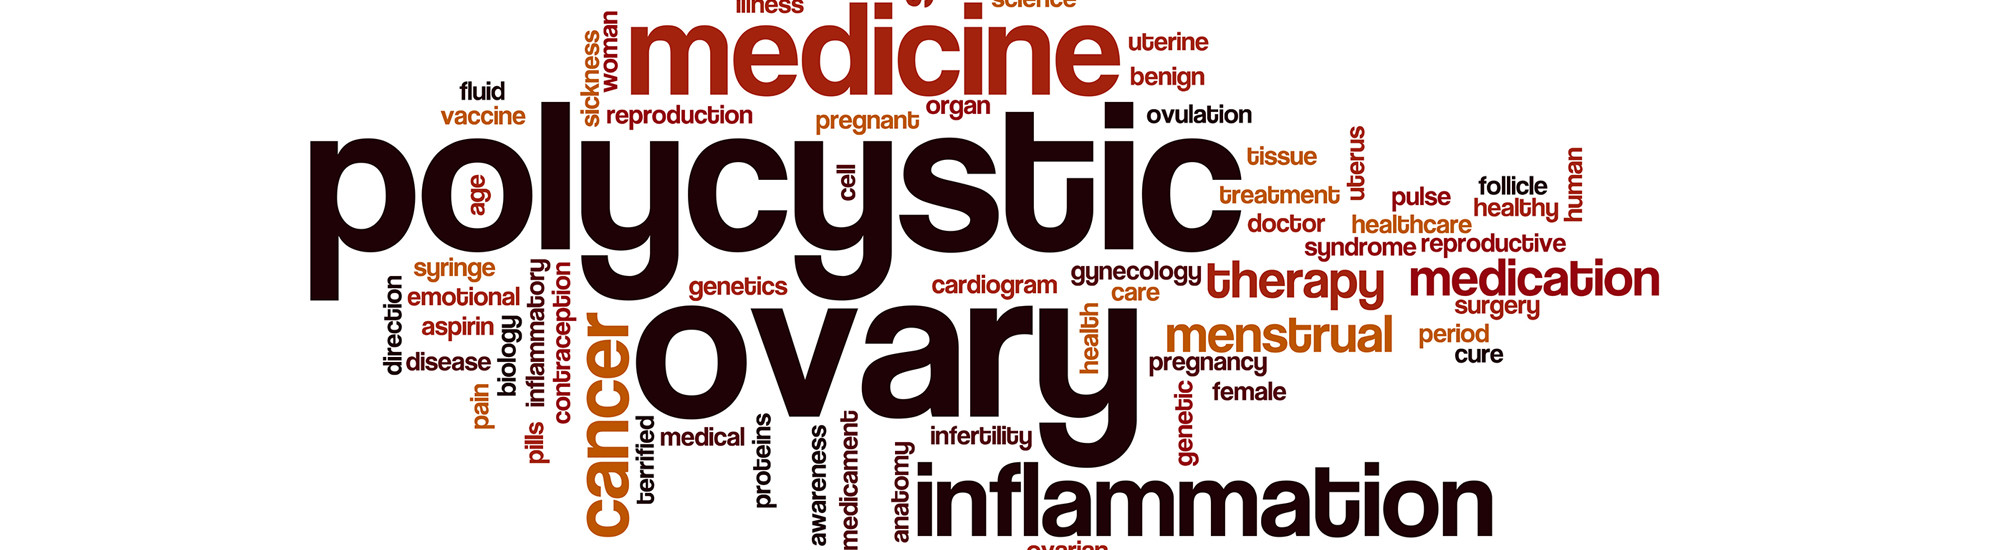 Ayurvedic treatment for Polycystic ovary syndrome-Disease -PCOS or PCOD-  FAQs